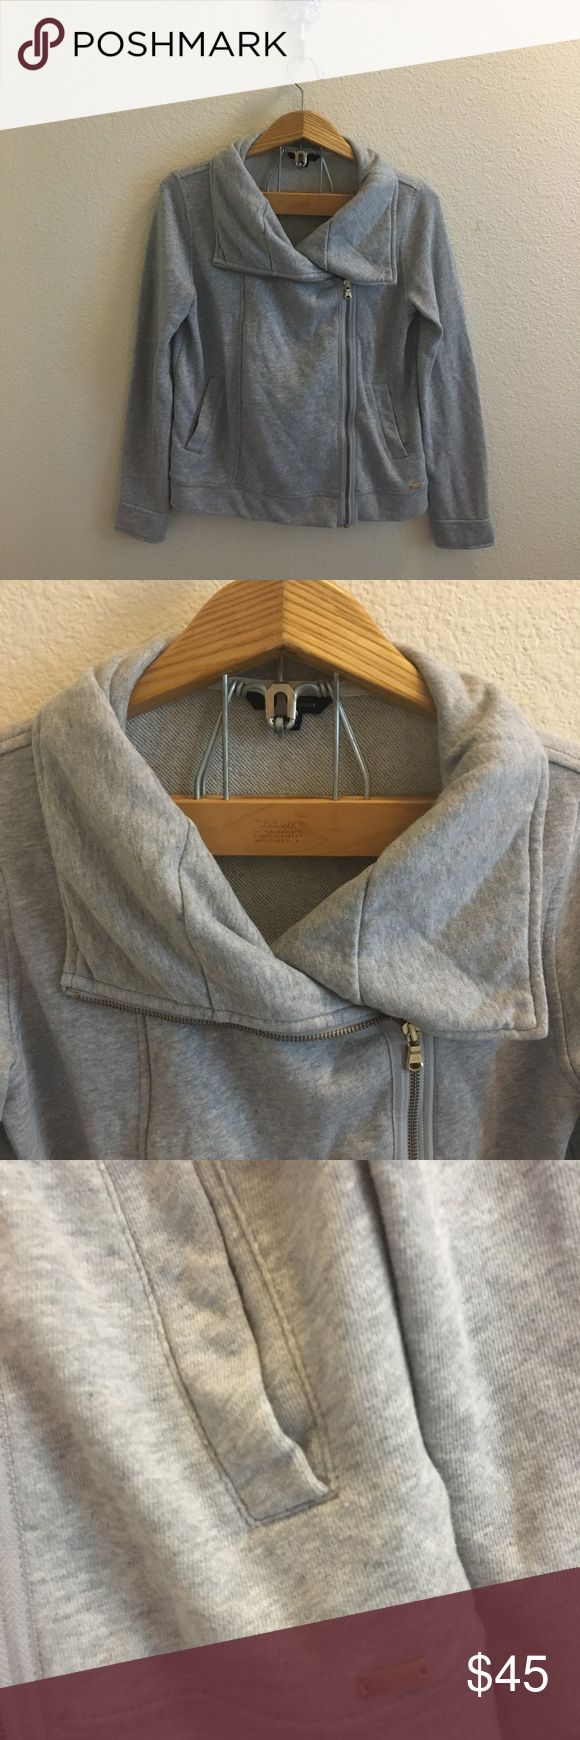 Tommy Hilfiger Gray Casual Jacket Size medium gray zip up jacket by Tommy Hilfiger. Has buttons on the sleeves. Cute fold over collar. Solid gray with gold hardware. By TH. No flaws. I ship daily - excluding Sundays and holidays - and I store items in a smoke free, pet free environment. Open to offers; bundles discounted! Tommy Hilfiger Jackets & Coats